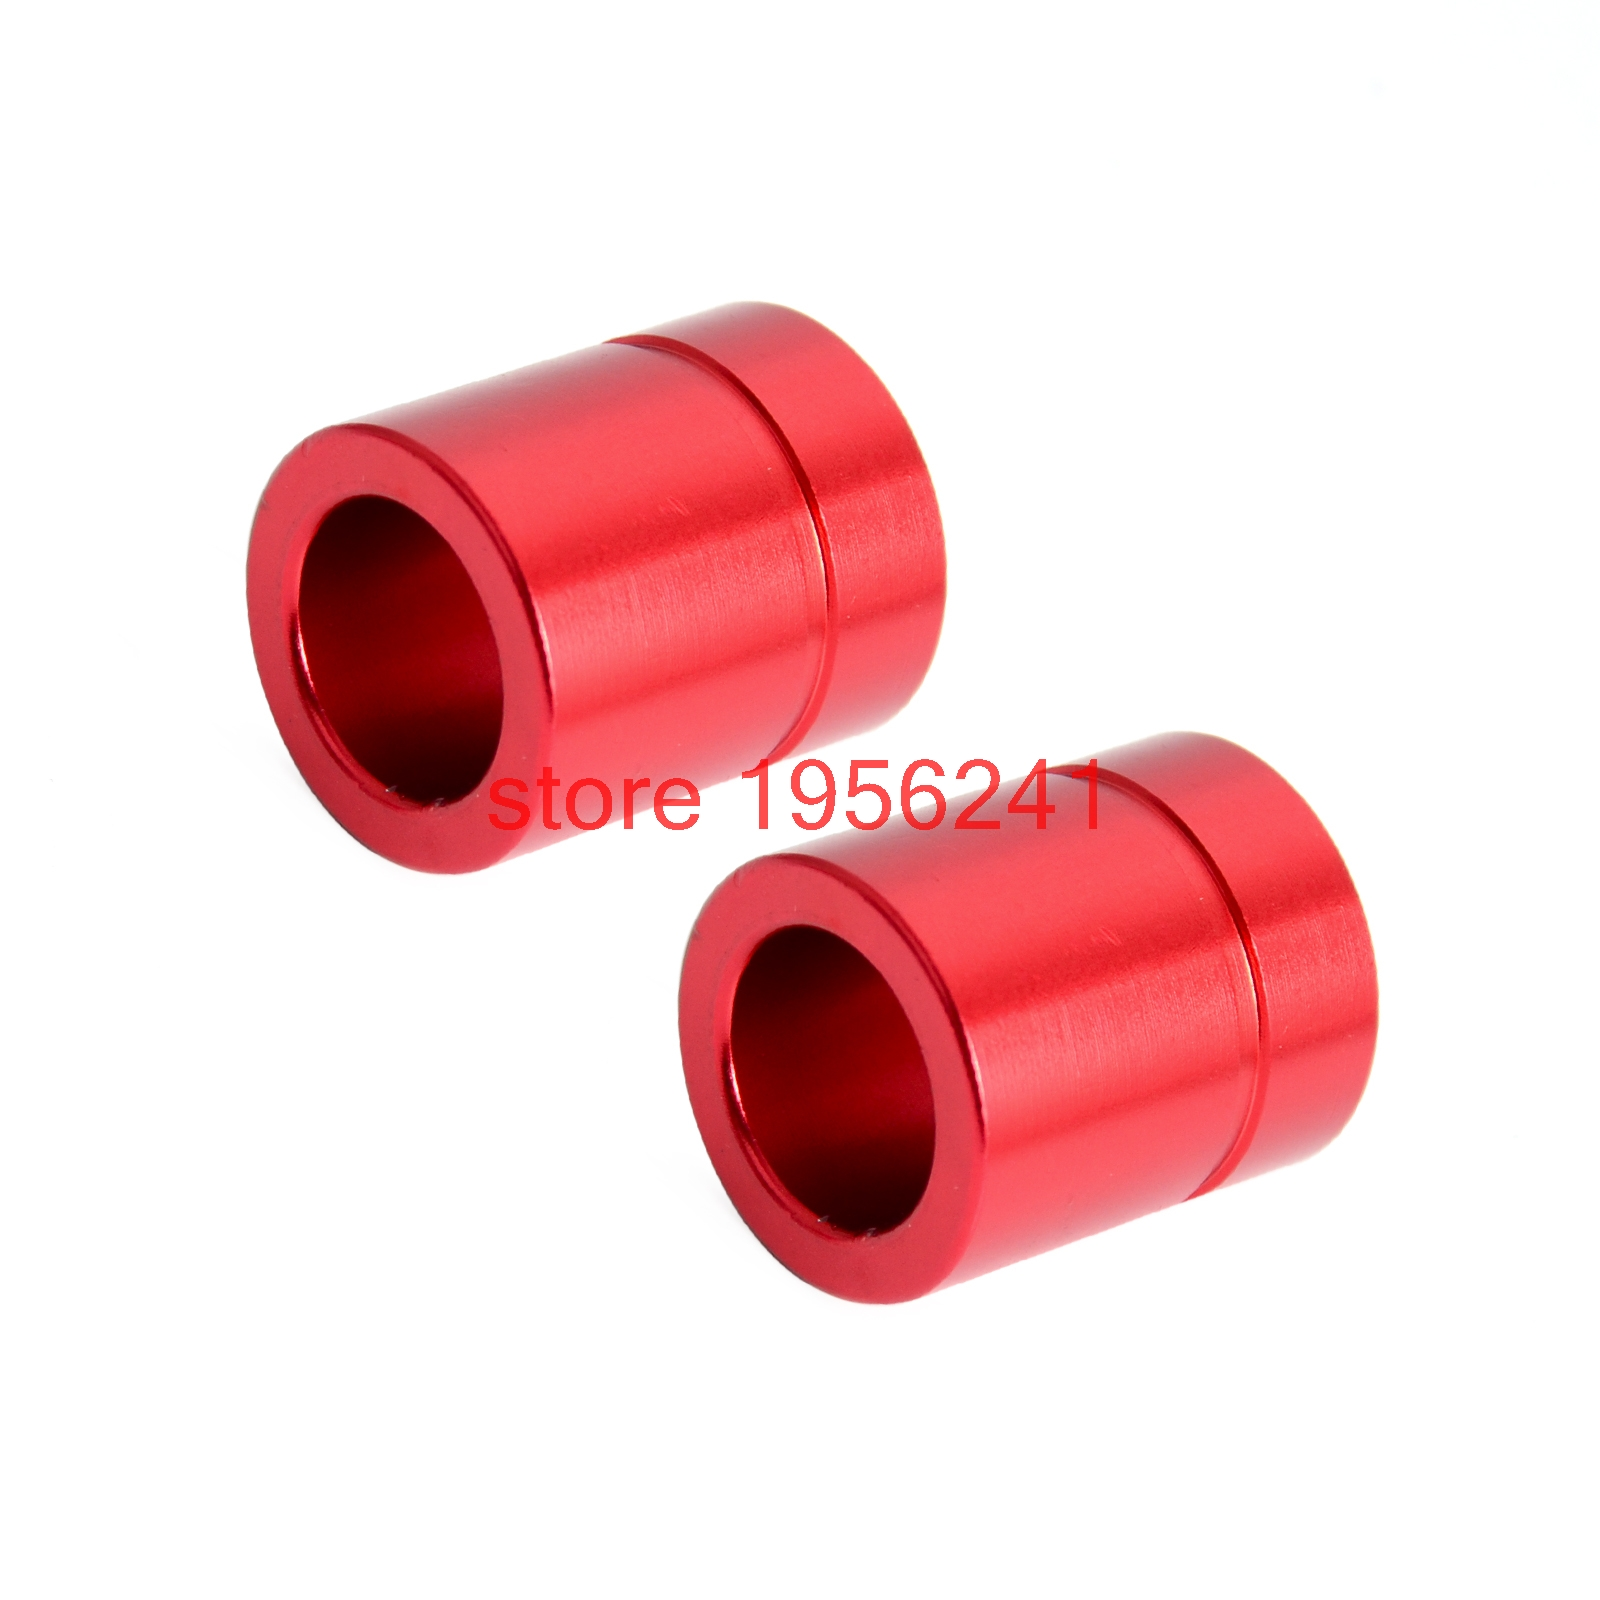 Red Billet Front Wheel Hub Spacers For Honda CRF250L CRF250M 2012 - 2015 2013 2014 CRF250 L M<br><br>Aliexpress